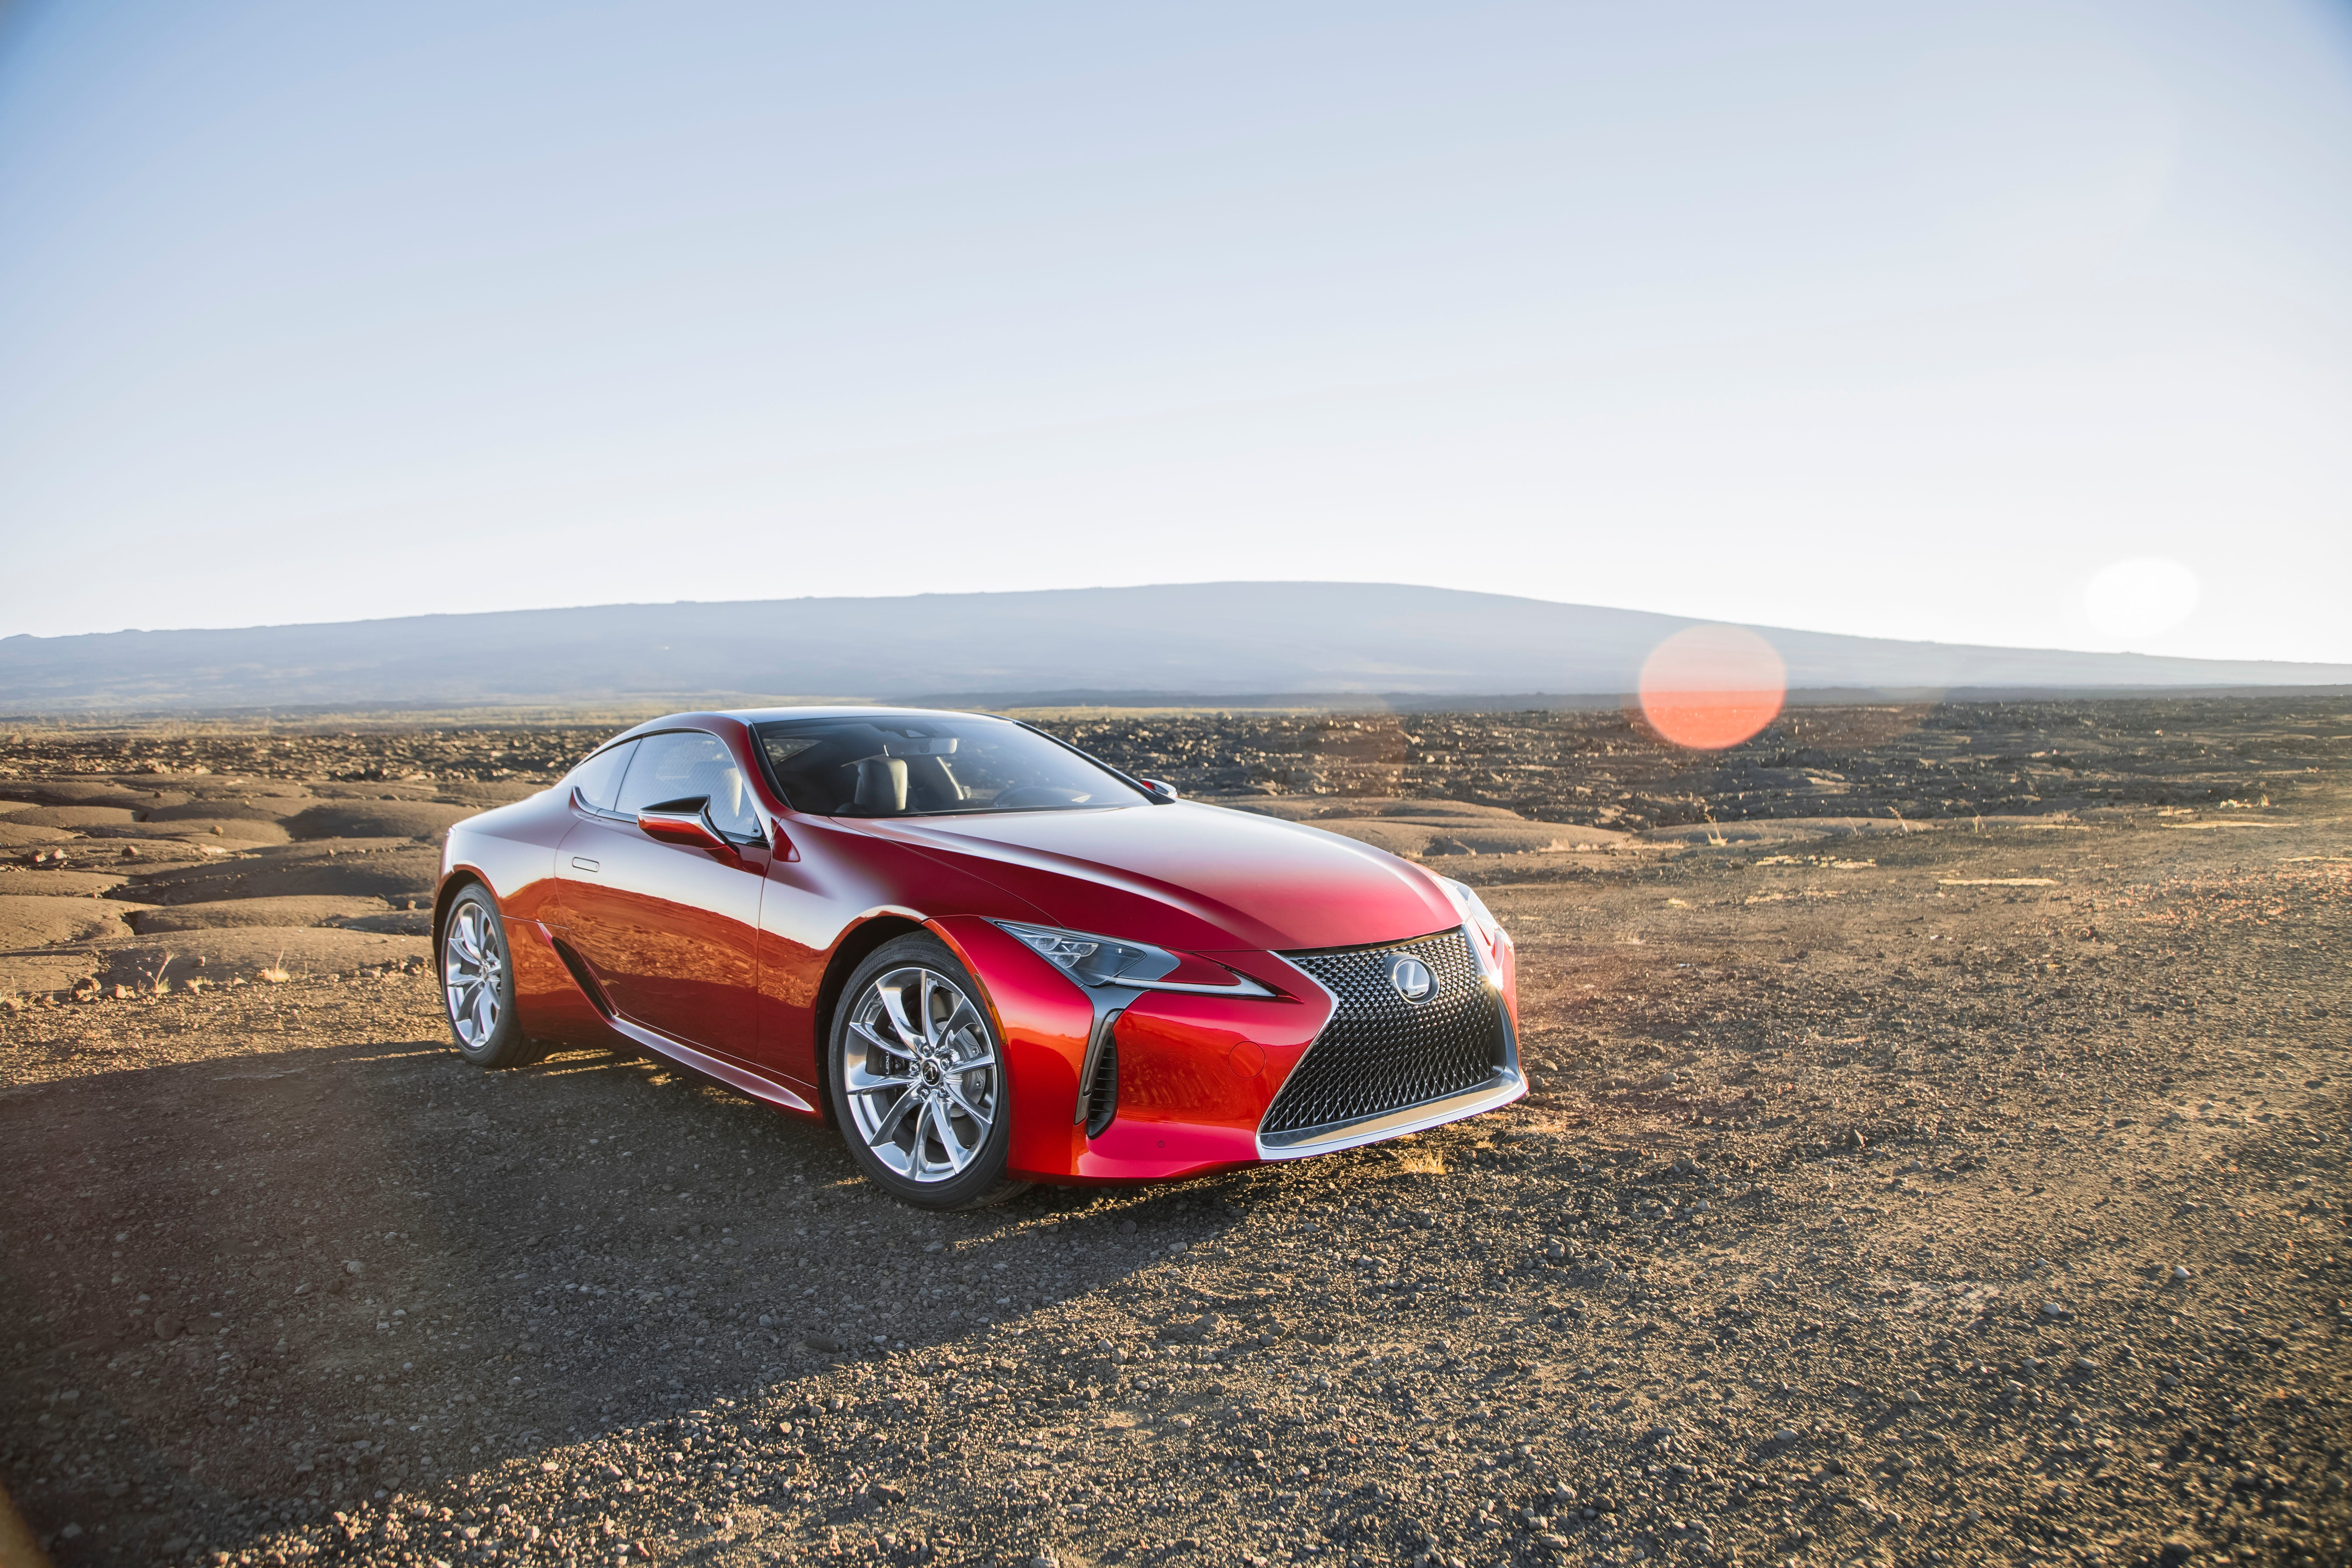 Review: Lexus LC 500 Offers Stunning Looks, Impressive Power